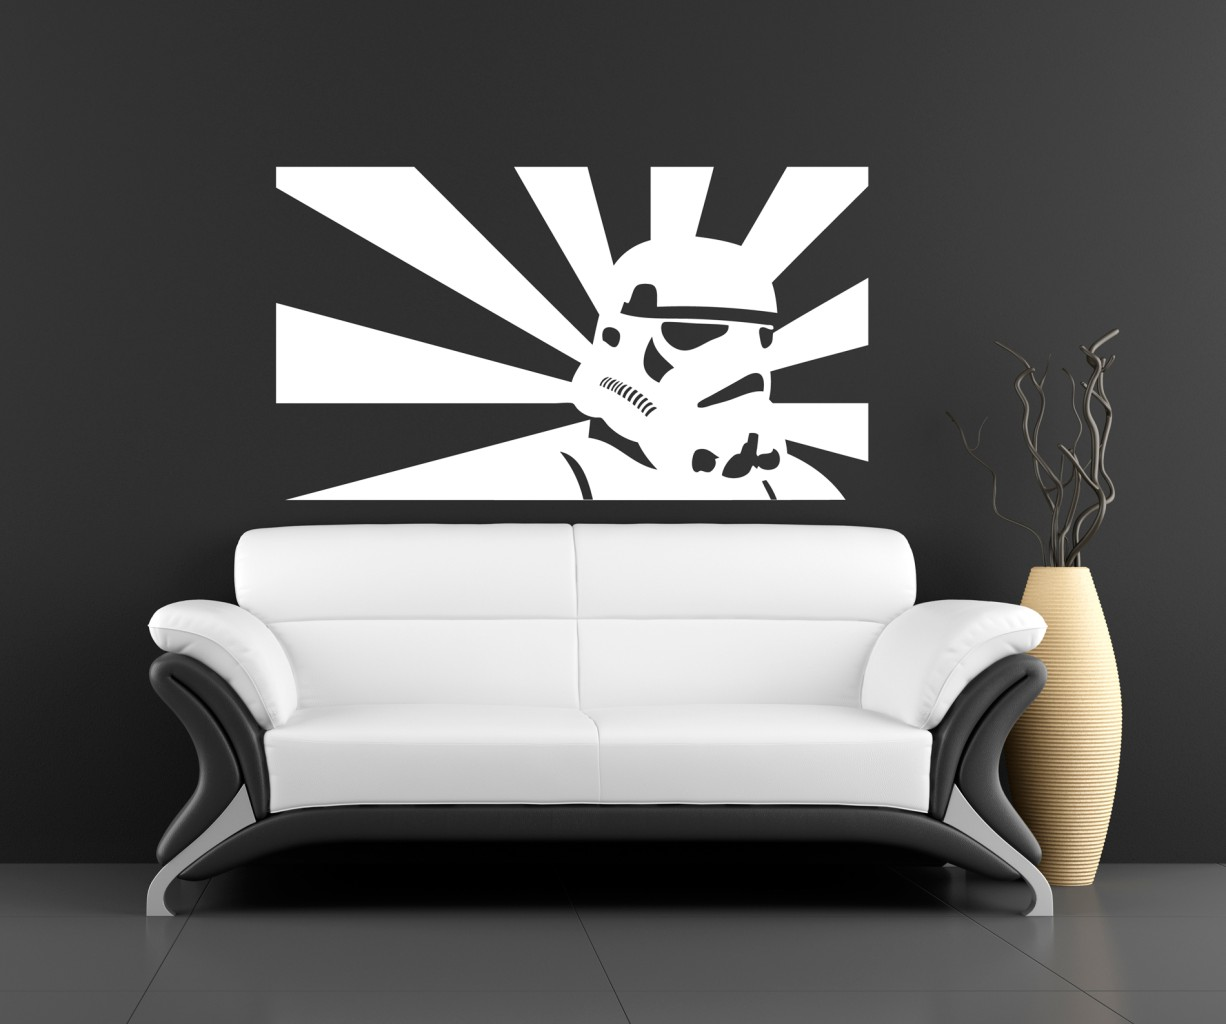 If you're going for a minimalist Star Wars design, all it takes is a fresh looking leather couch, and a bold Star Wars art piece.